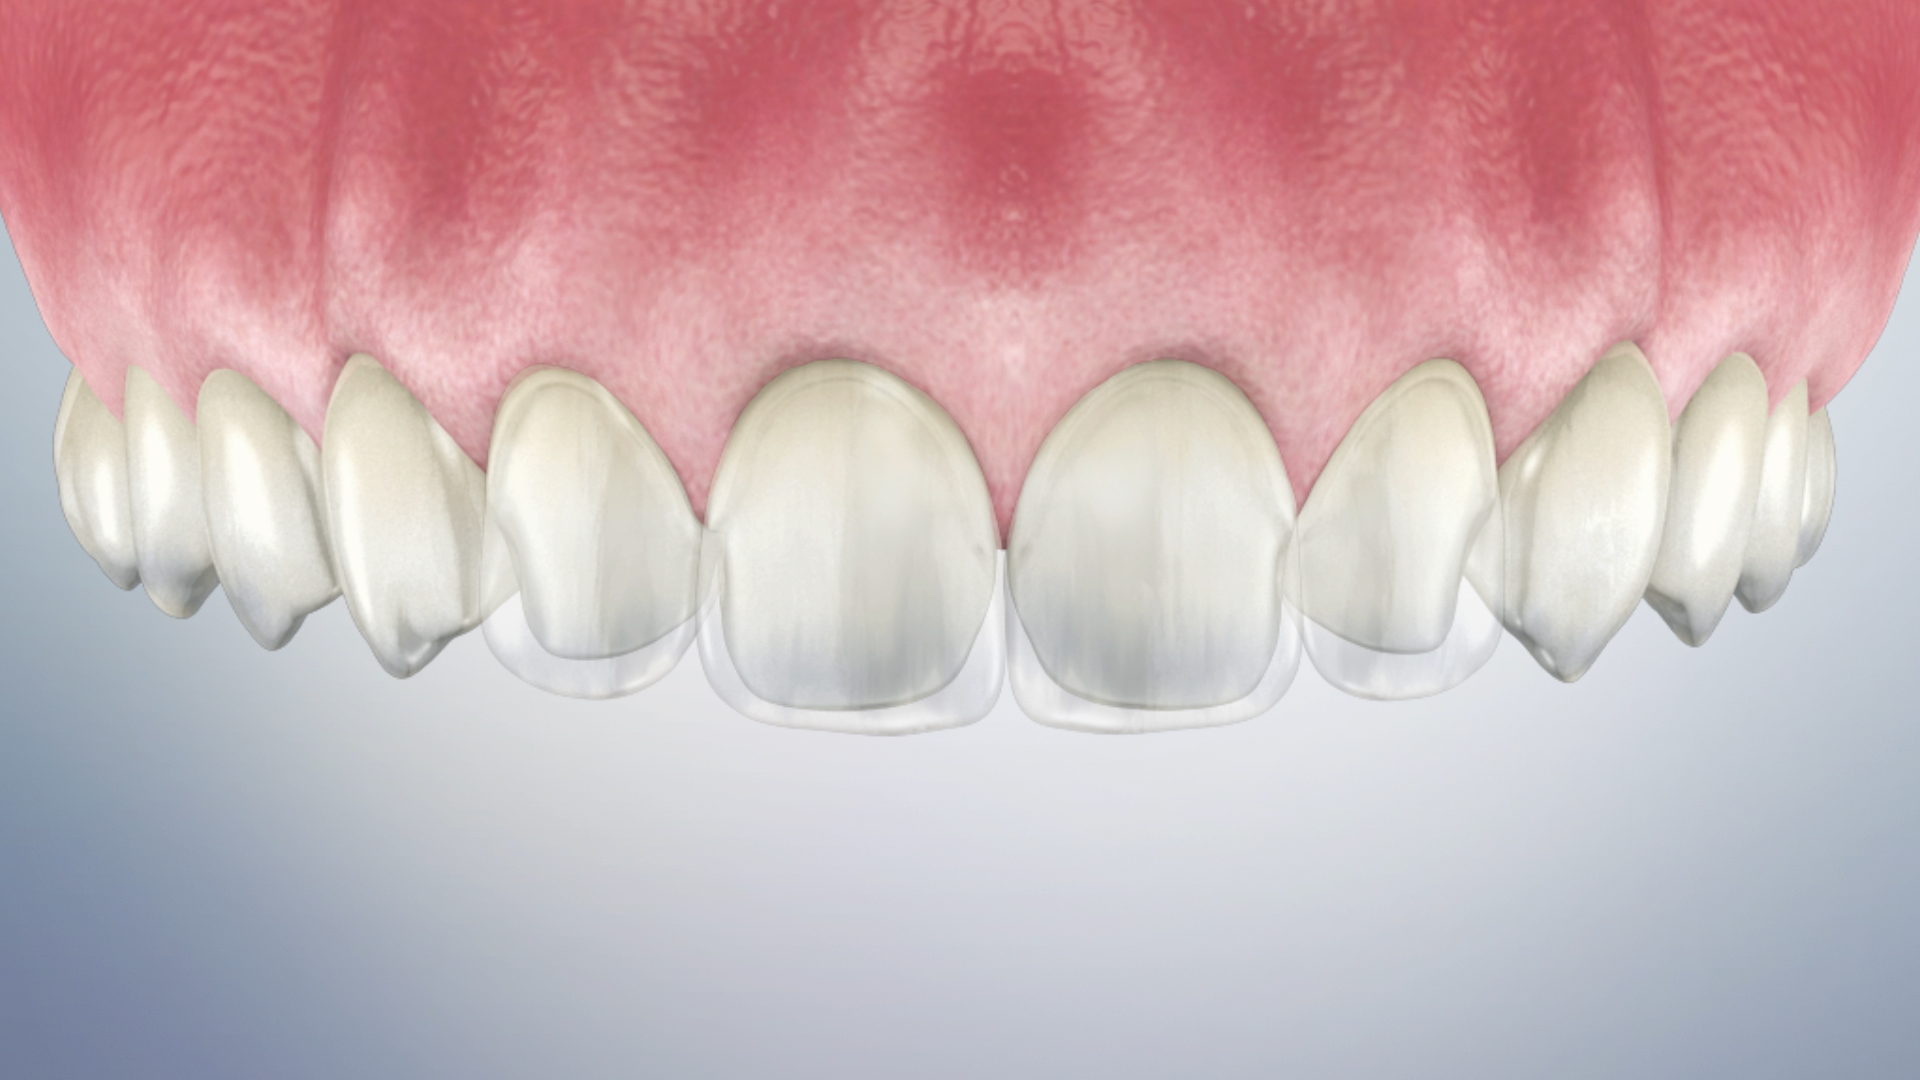 Thumbnail for a video on Post-Operative Instructions for Temporary Veneers